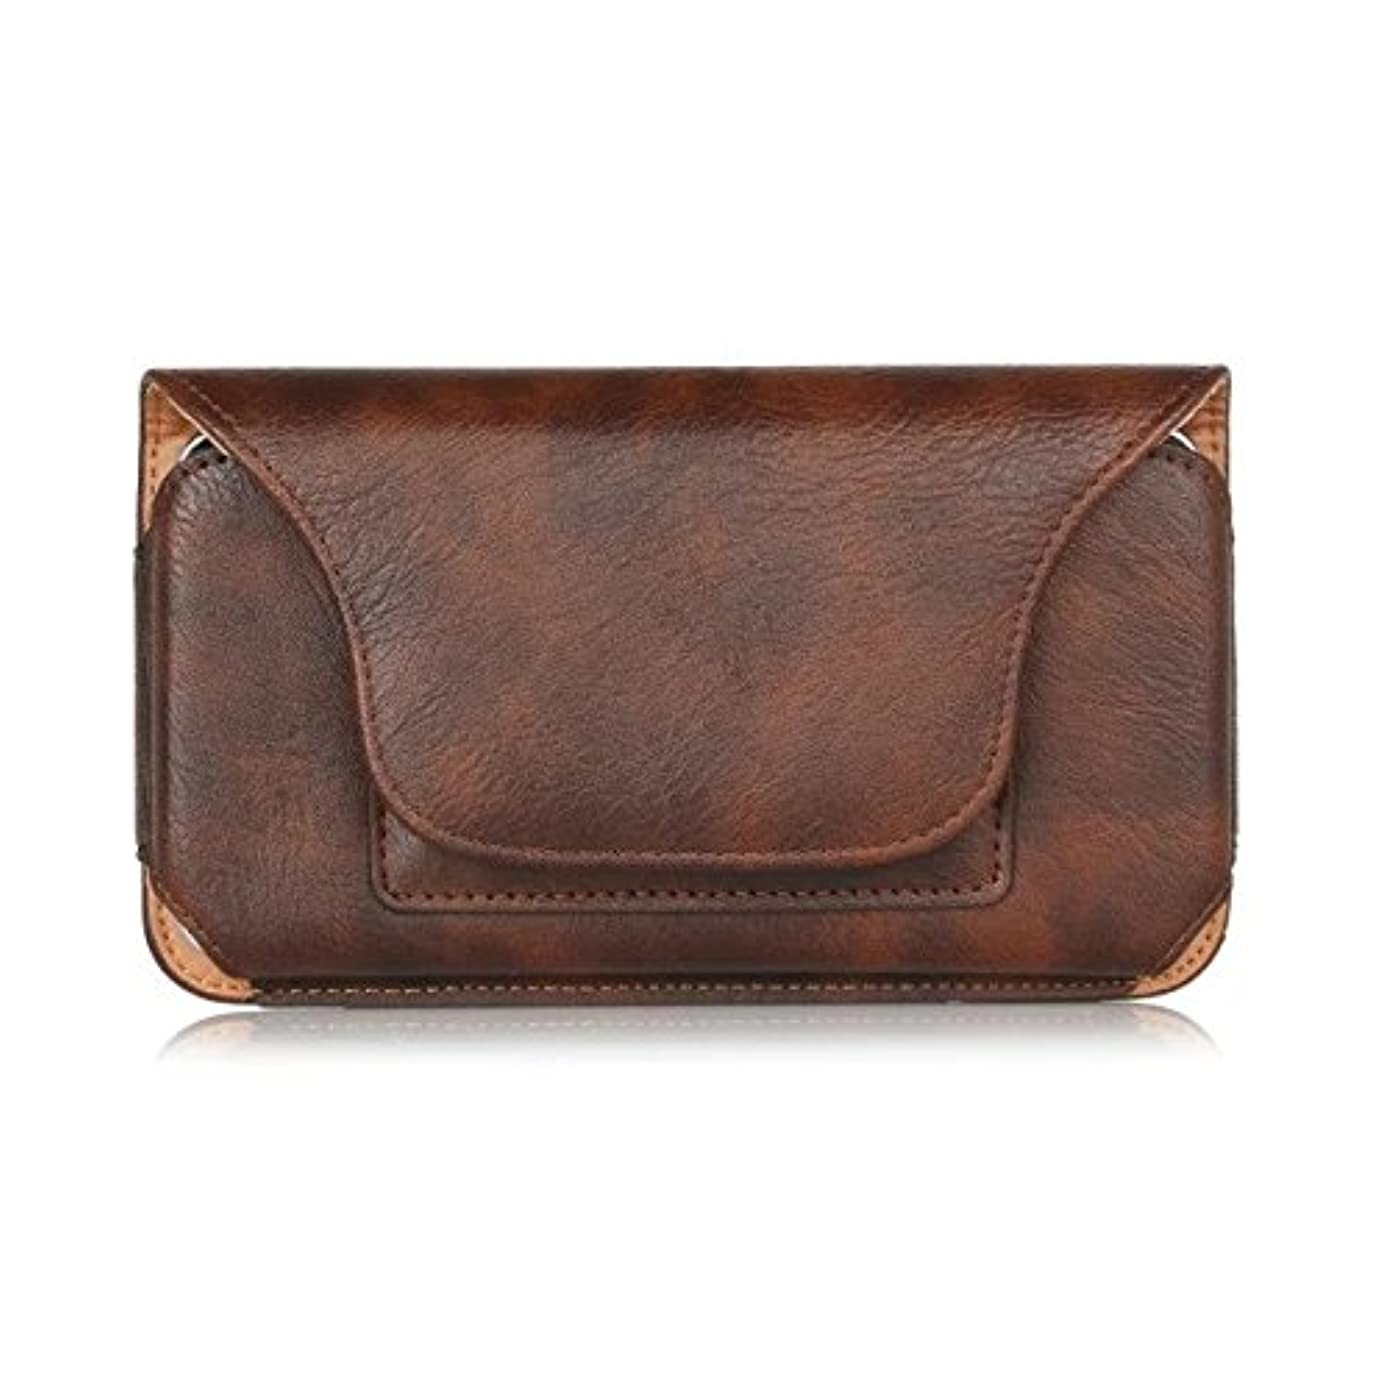 Vertical Faux PU Leather Travel Belt Clip Holster Pouch Cover Case for iPhone Xs Max/Samsung Galaxy Note9 / LG V40 / G7 ThinQ/Stylo 4 / Google Pixel 3 XL (Brown, XL)